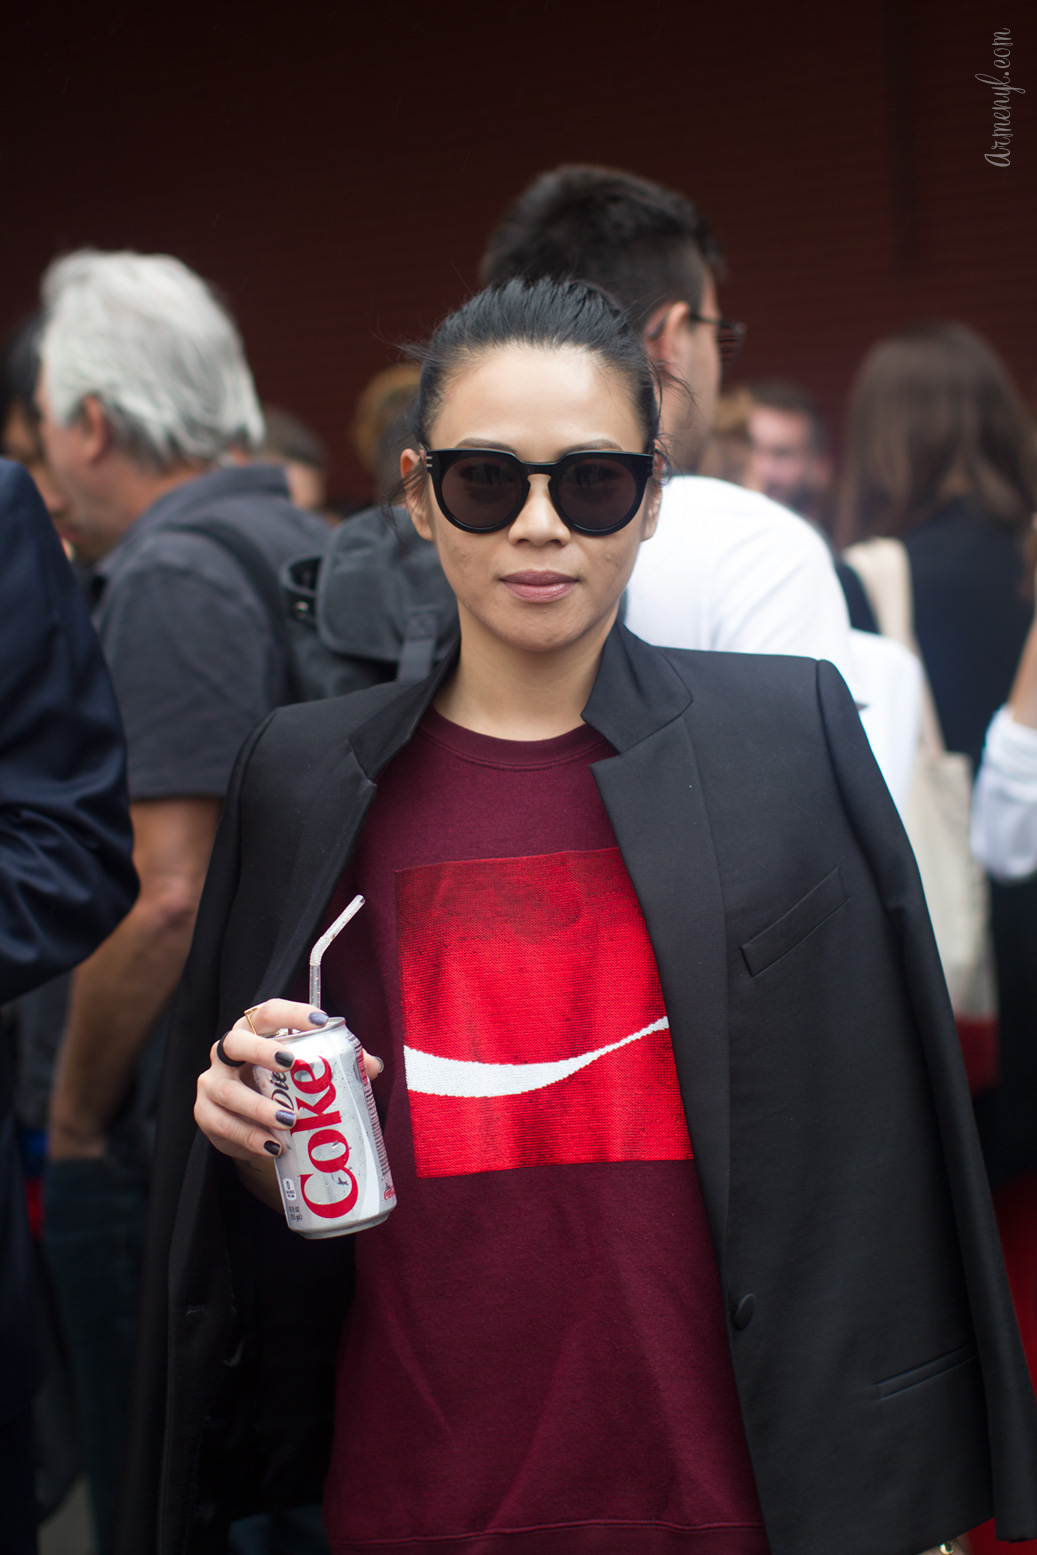 Coca-Cola-Sweatshirt-by-Armenyl